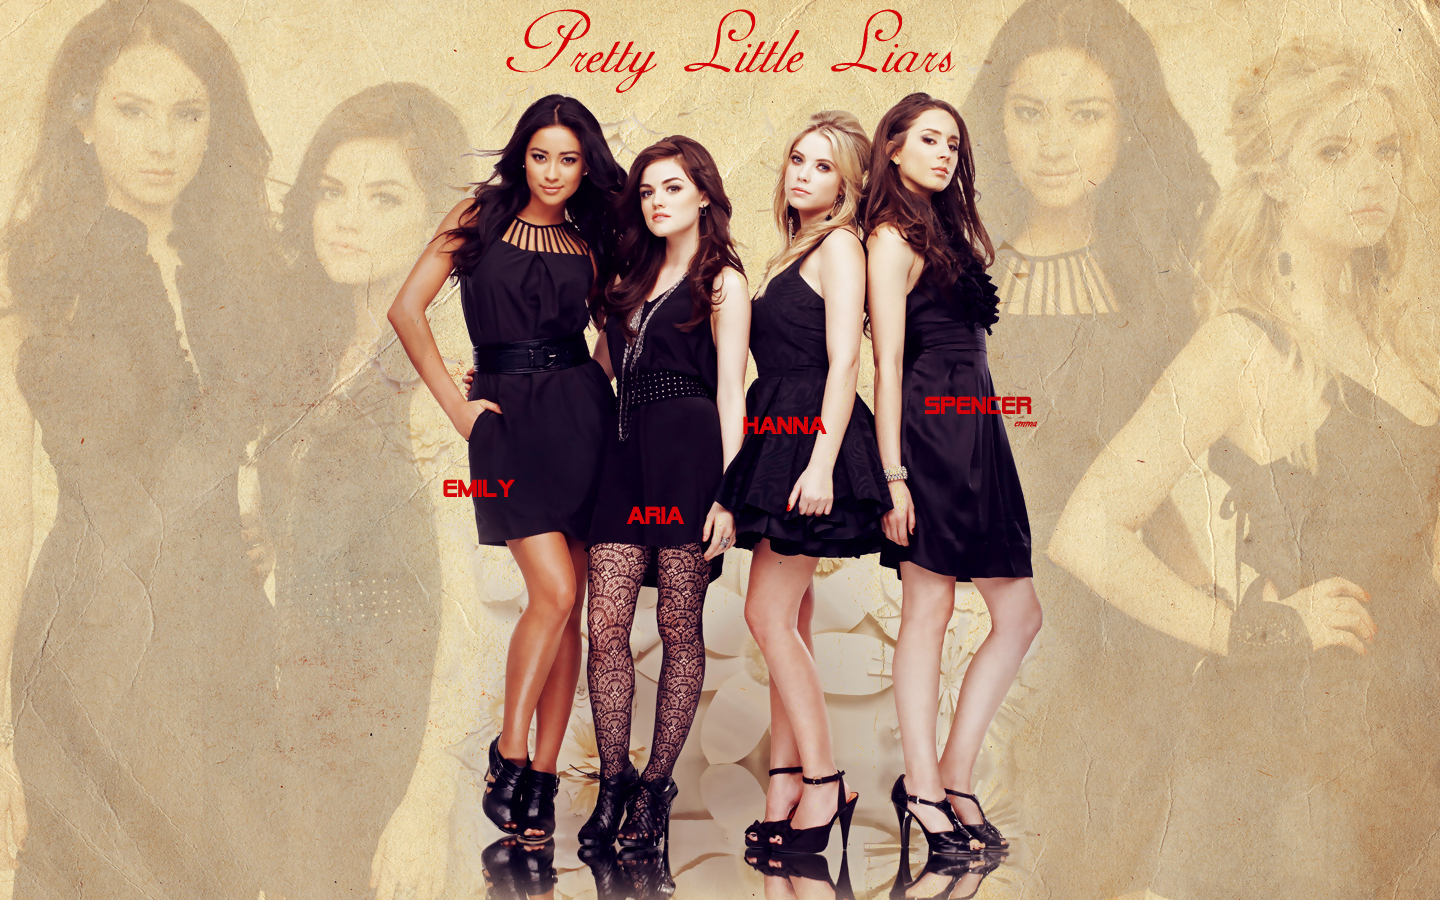 ... Pretty-Little-liars-pretty-little-liars-tv-show-